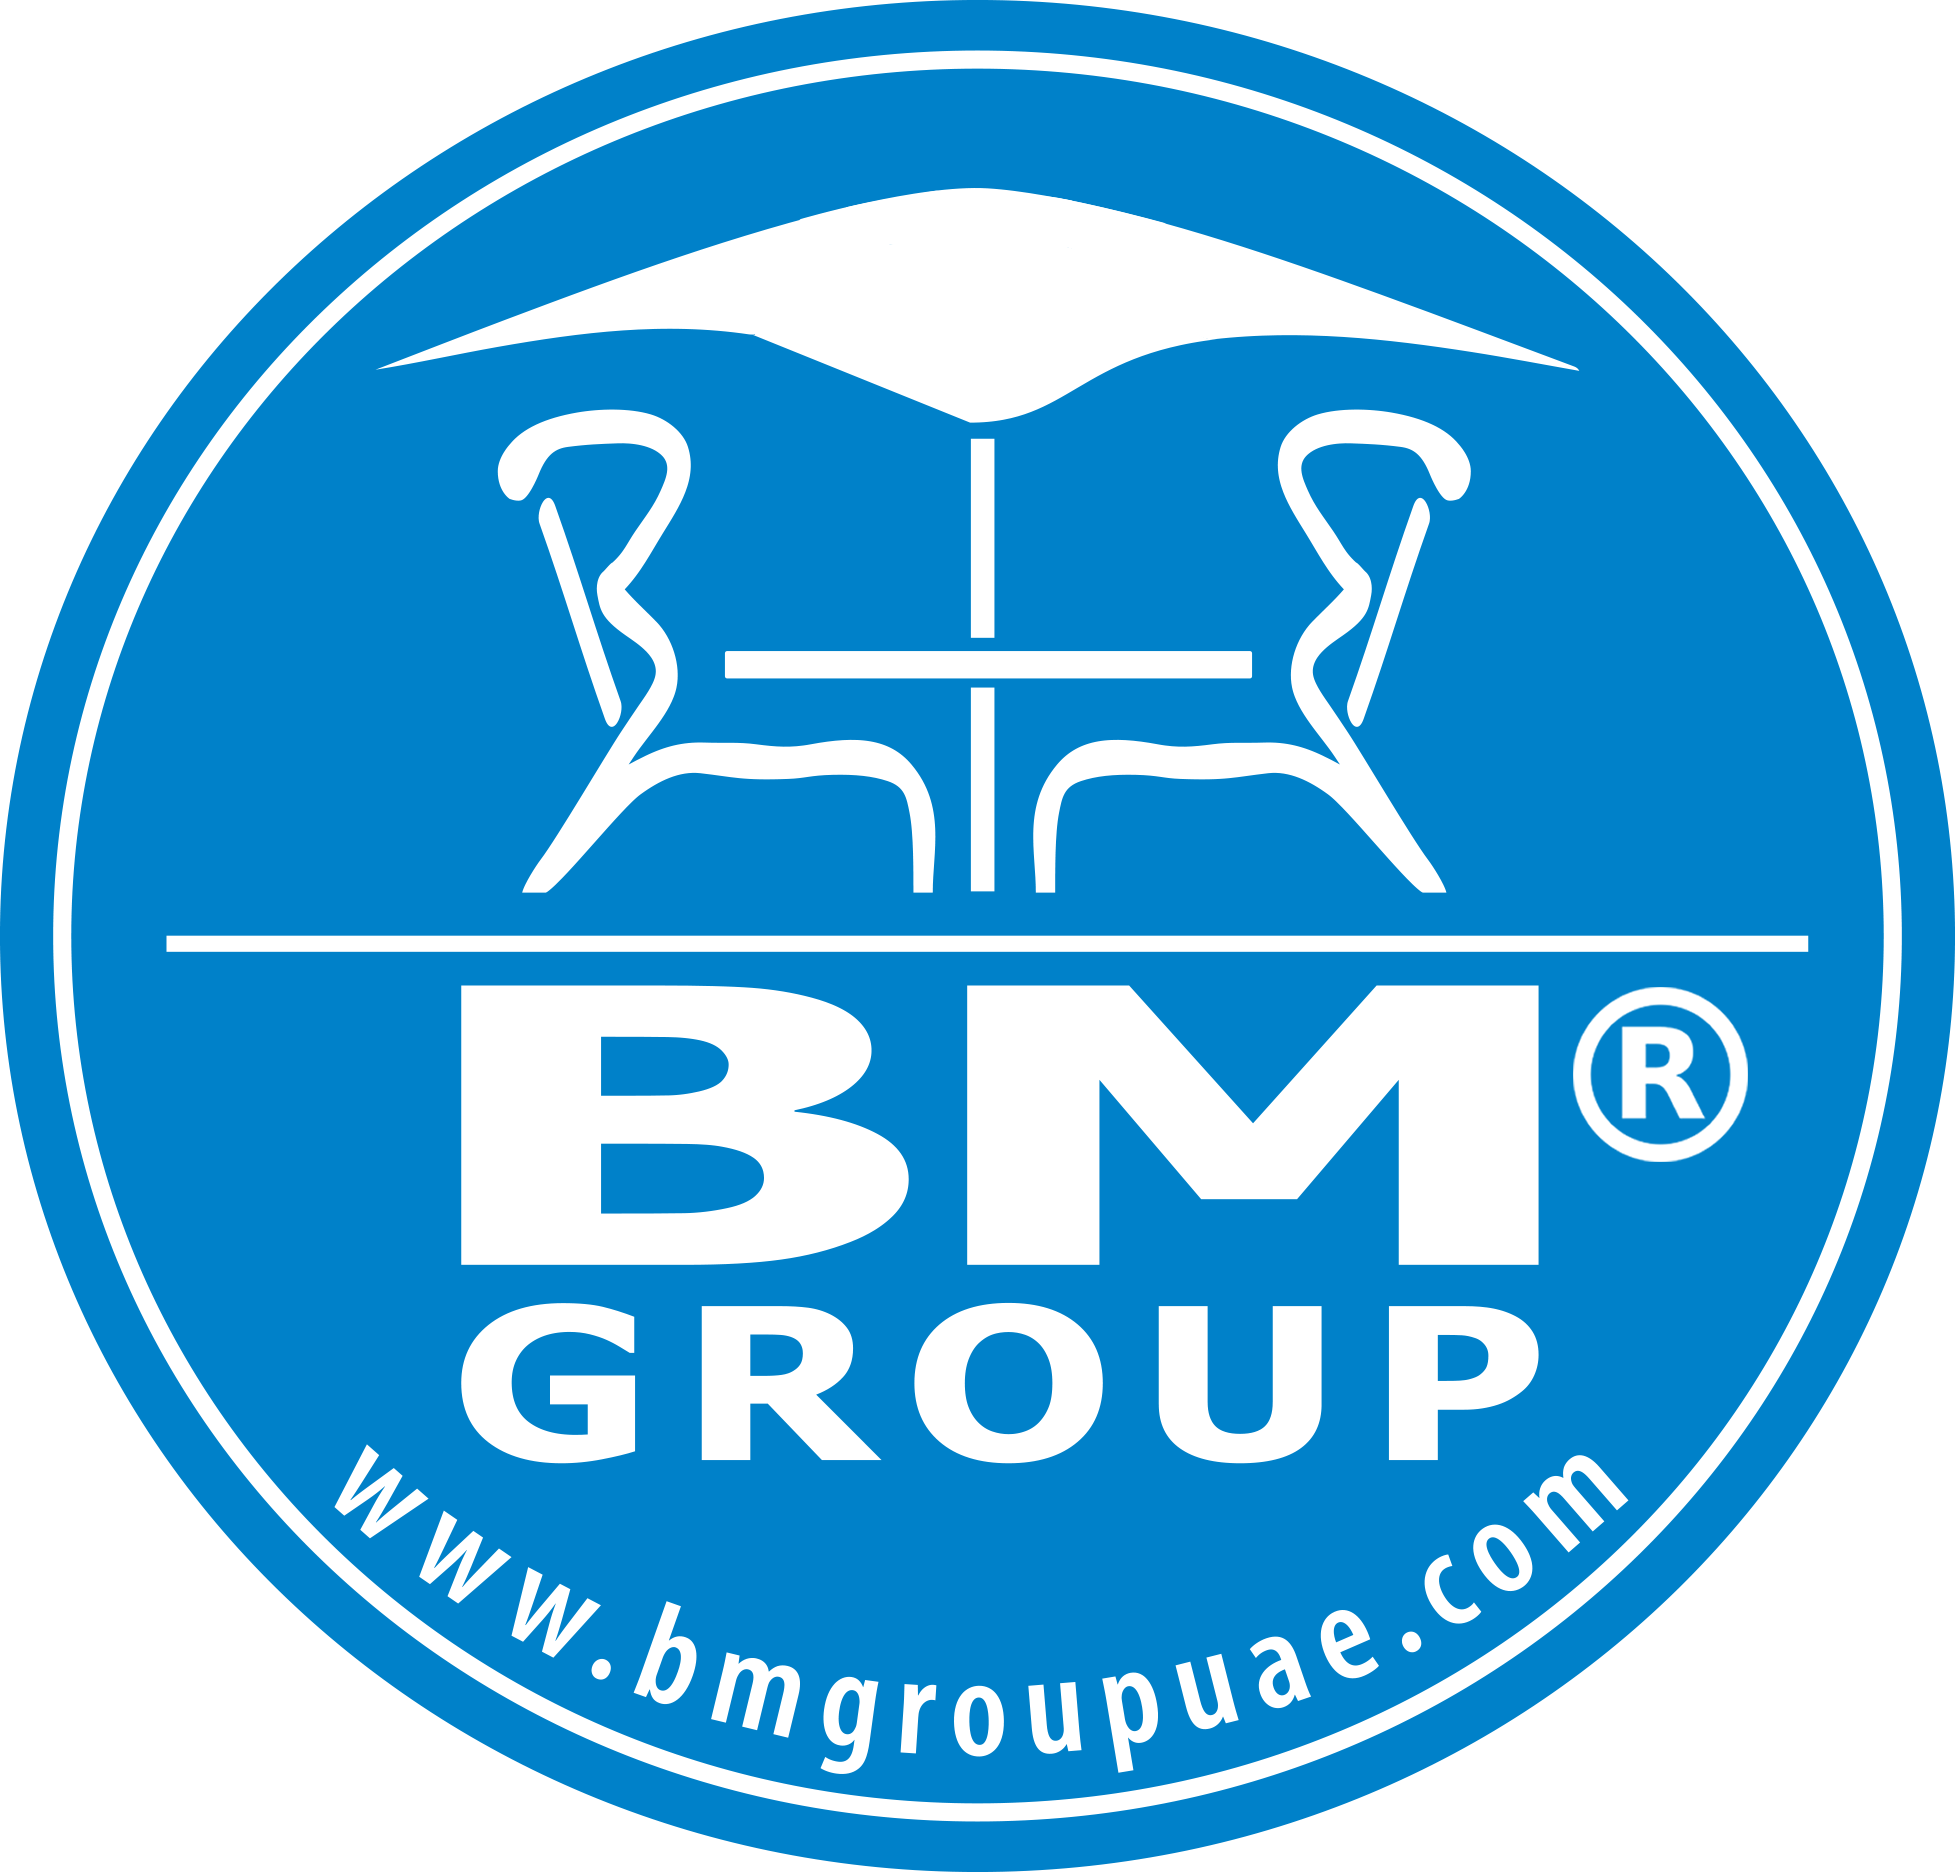 BmGroups